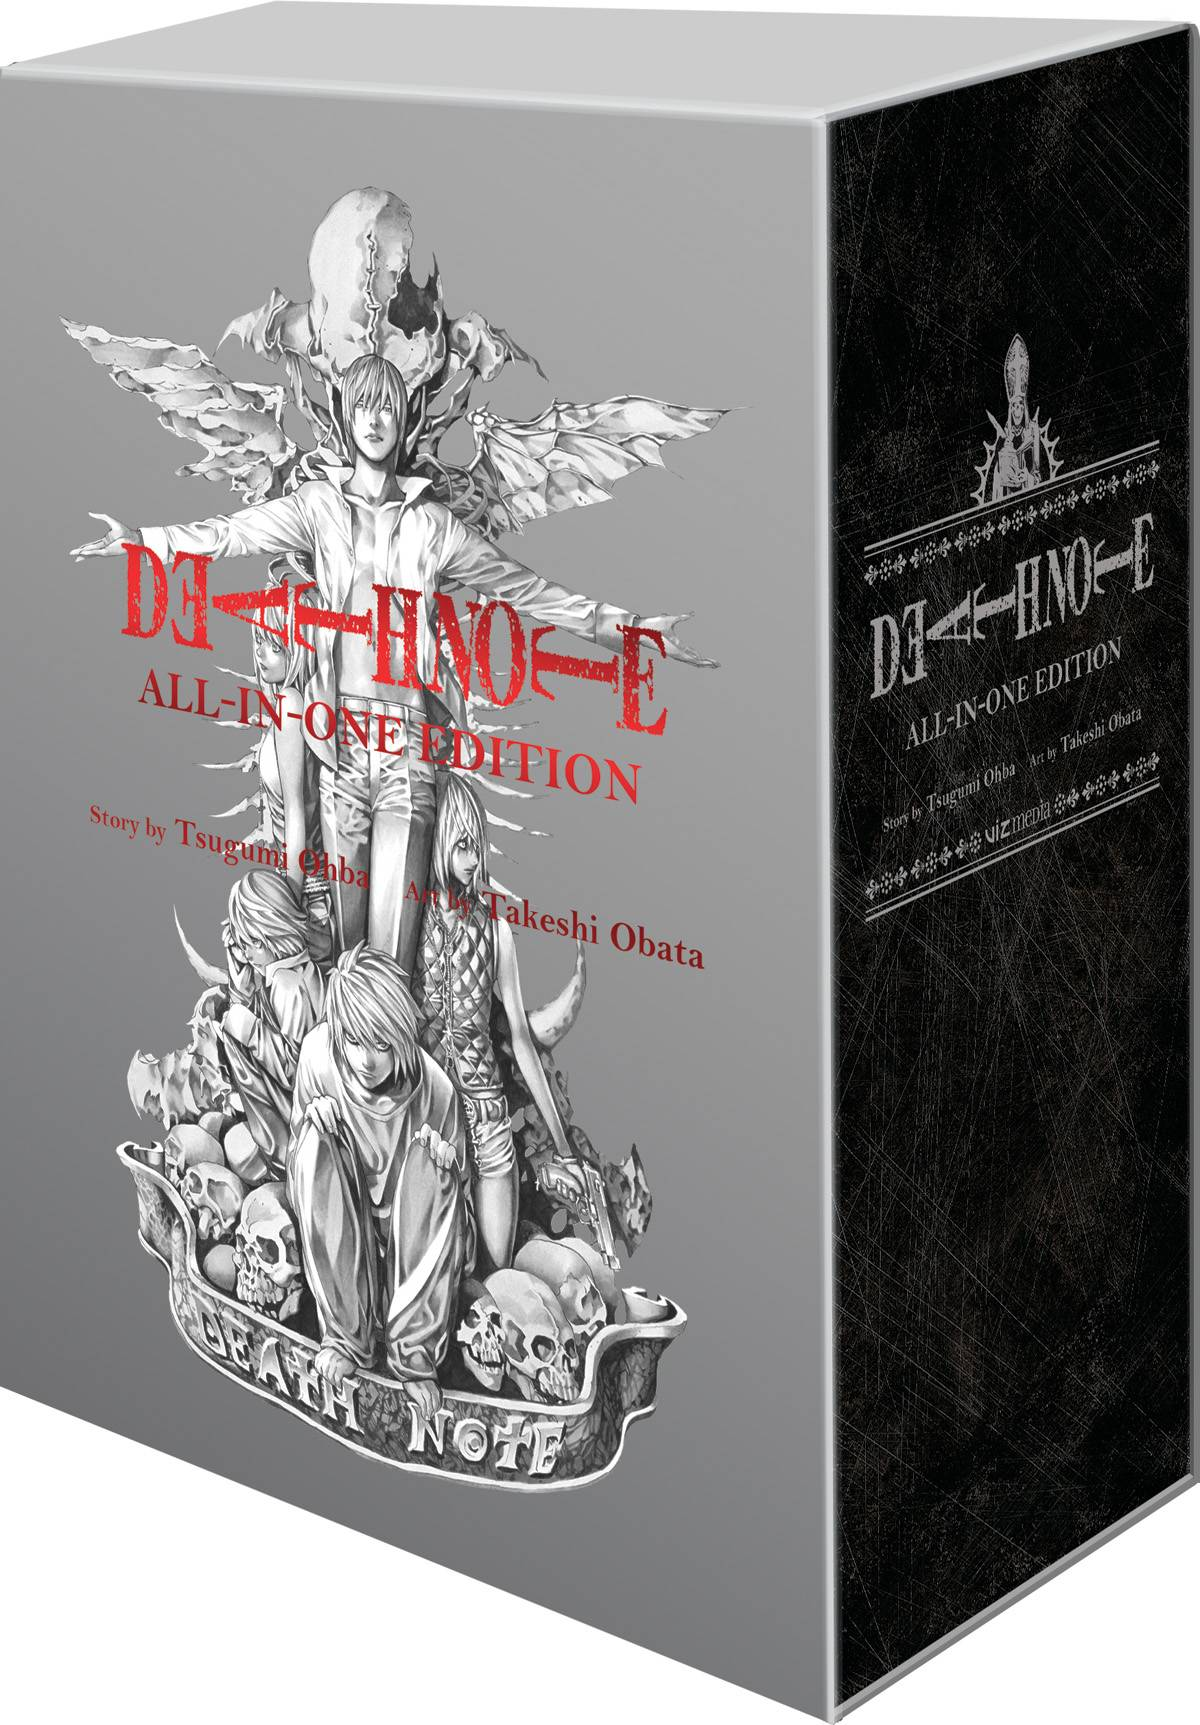 DEATH NOTE SLIPCASE GN ALL IN ONE EDITION (C: 1-0-1) | L.A. Mood Comics and Games